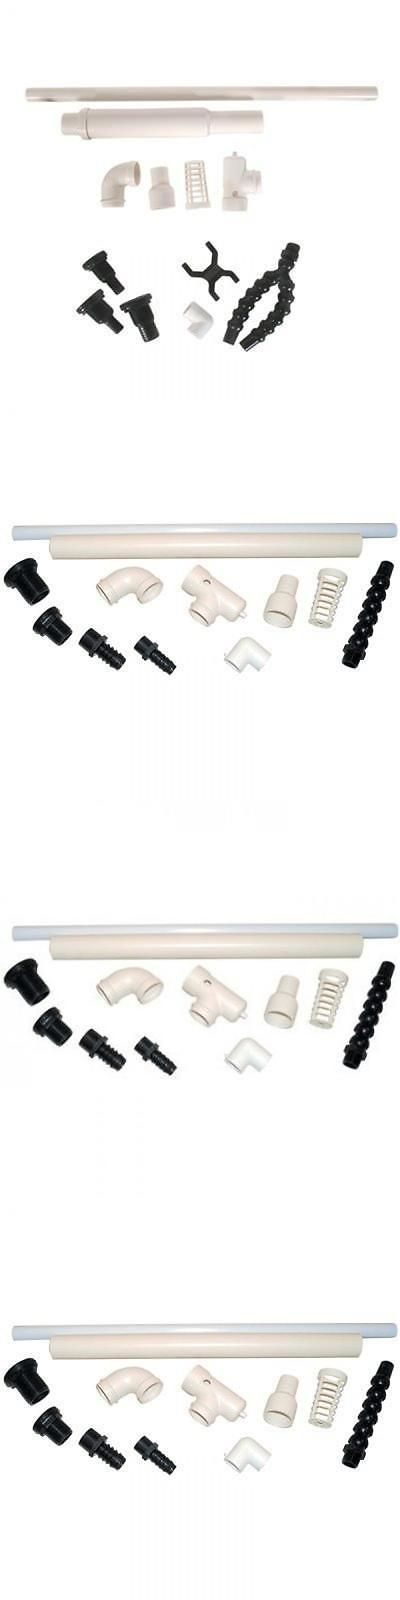 Tubing and Valves 177800: All Glass Aquarium Aag29251 Overflow Accessory New Kit, New, Free Shipping BUY IT NOW ONLY: $68.17